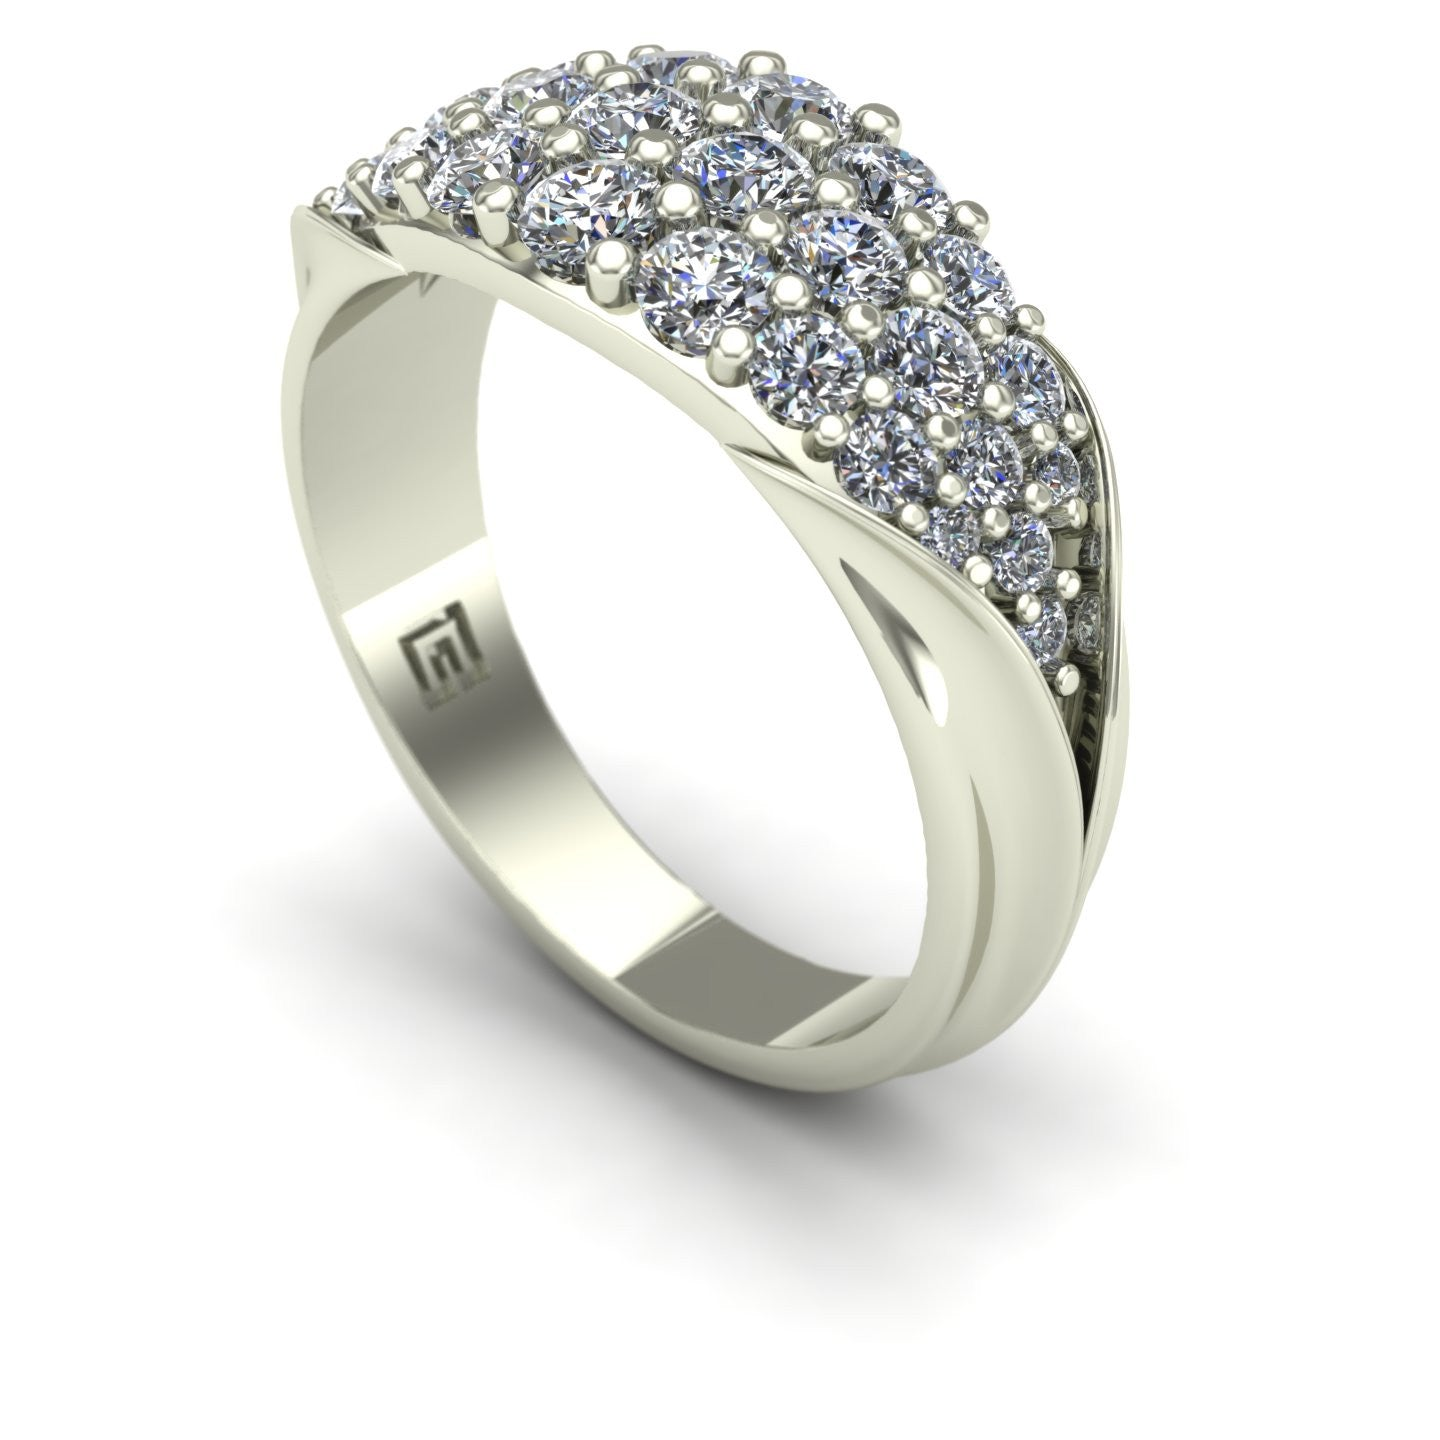 One carat diamond pavé band in 14k white gold